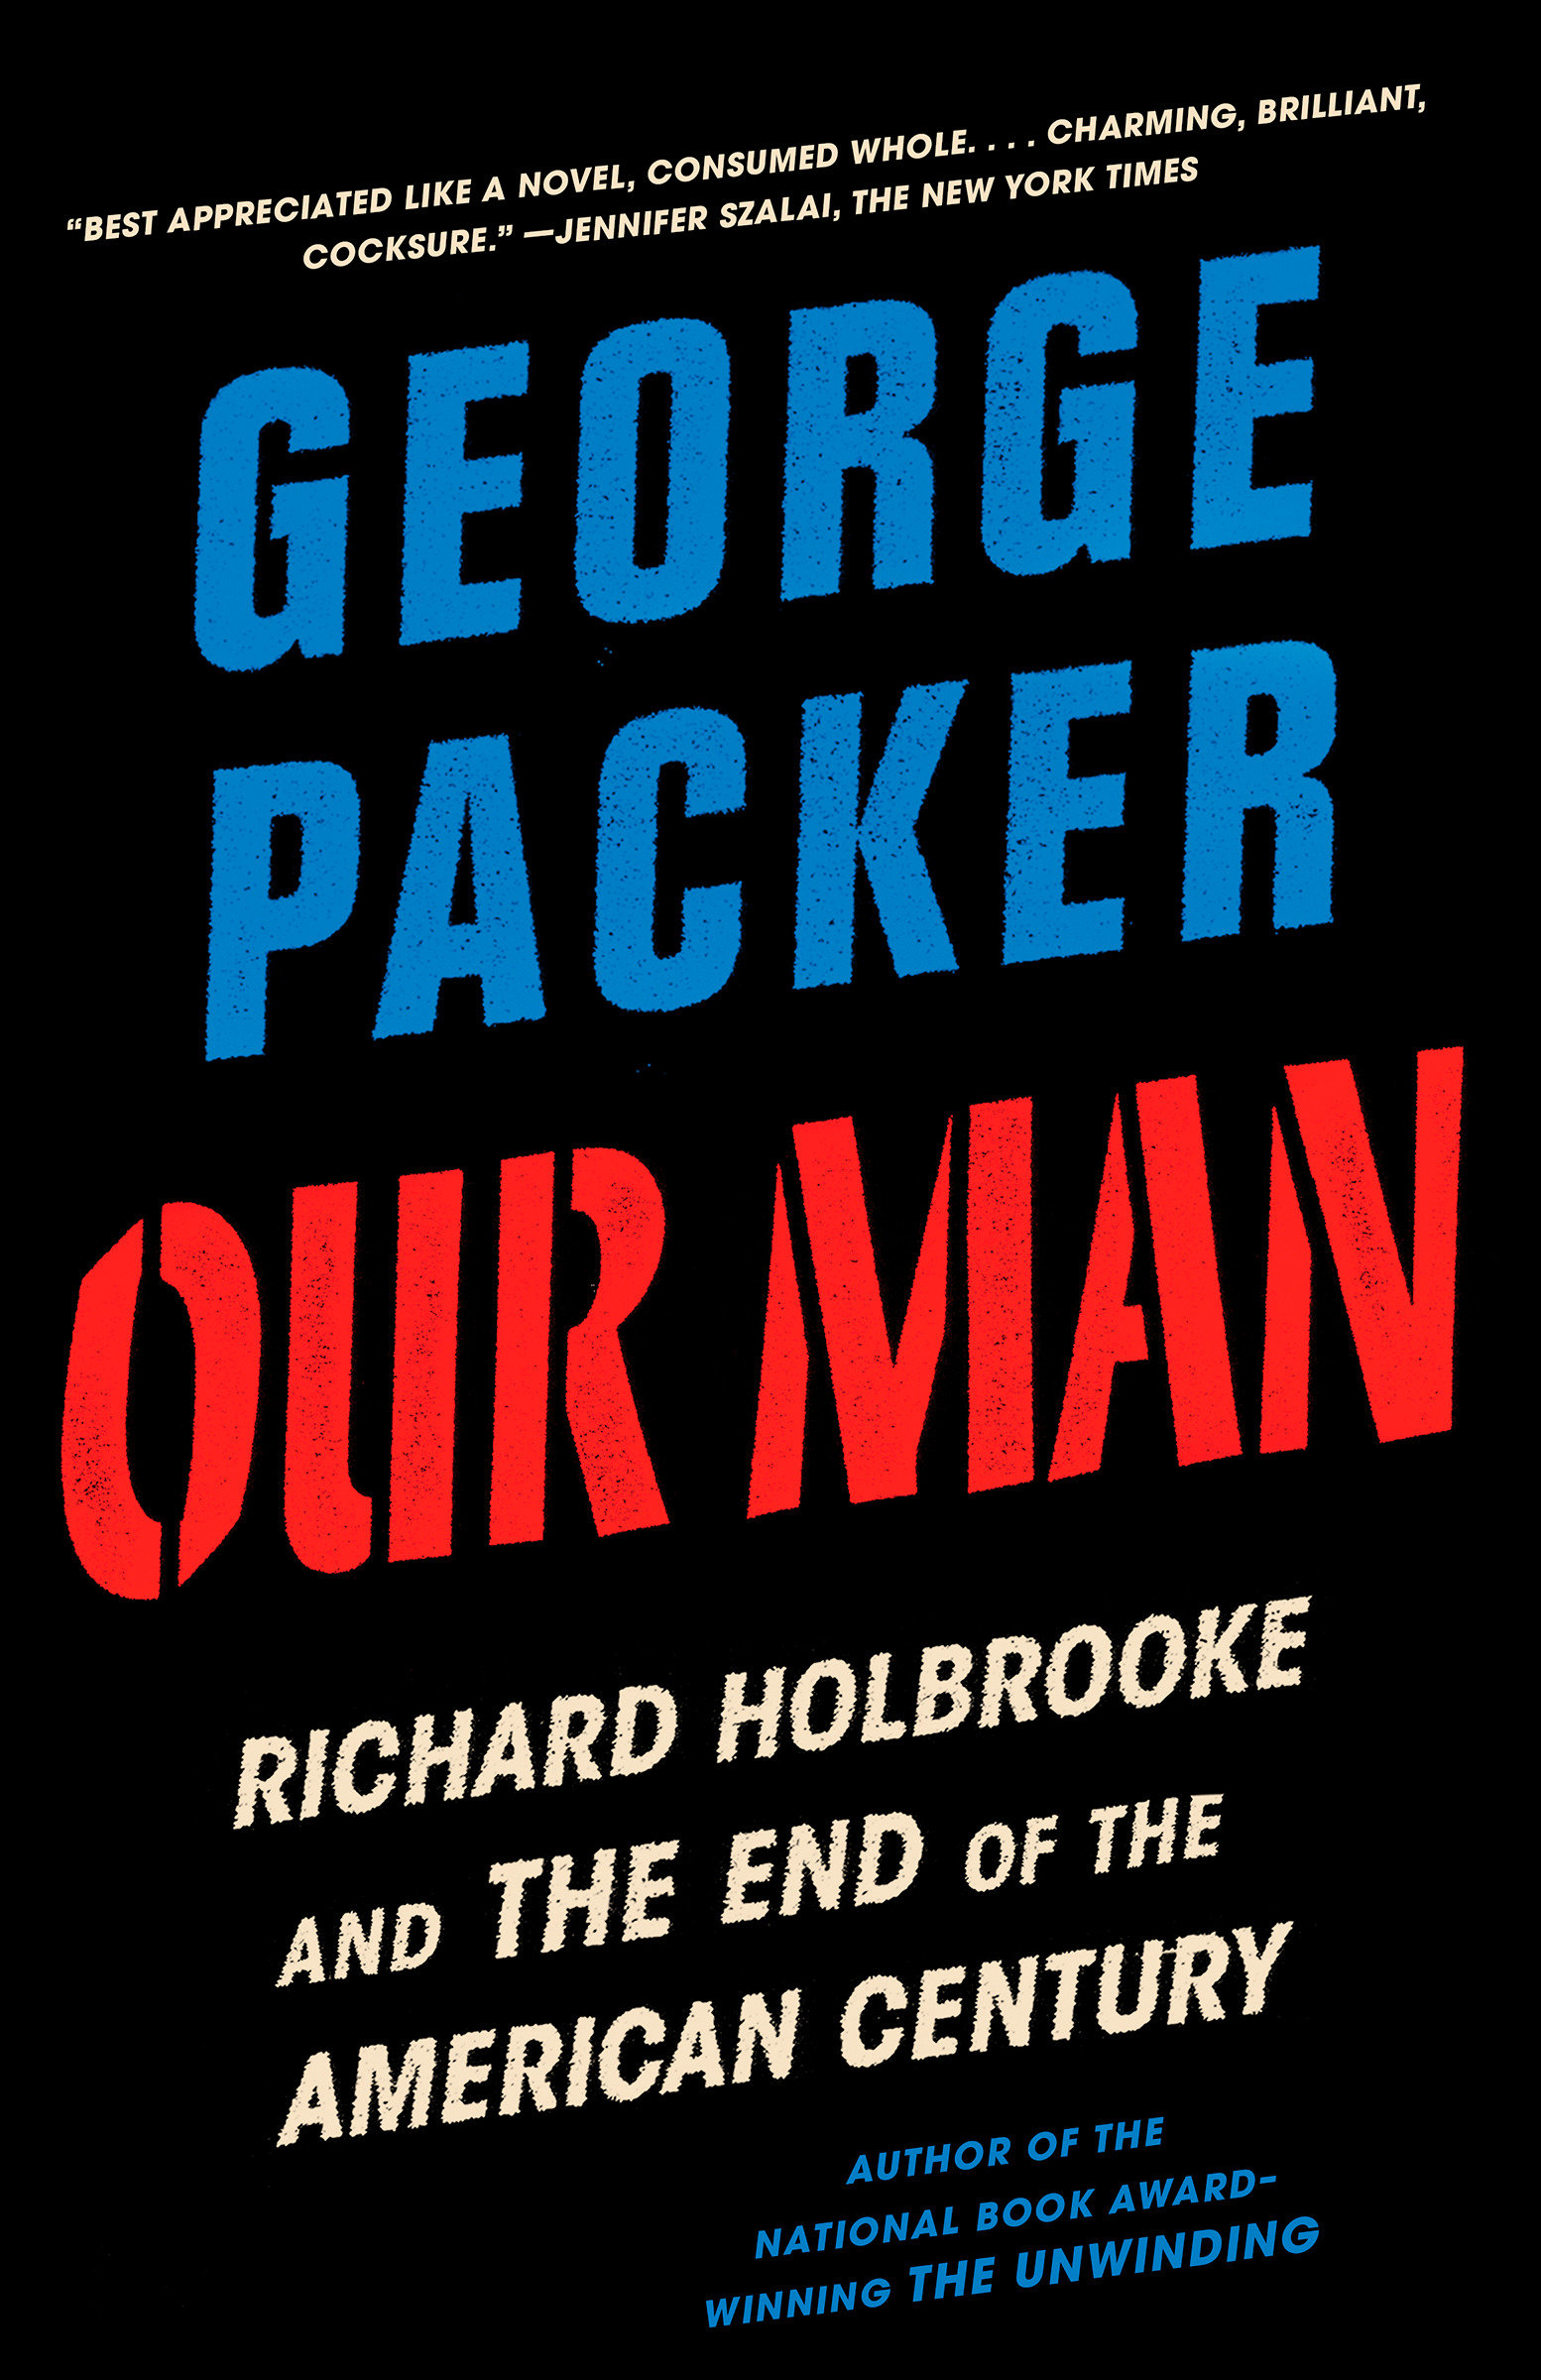 Our man Richard Holbrooke and the end of the American century cover image